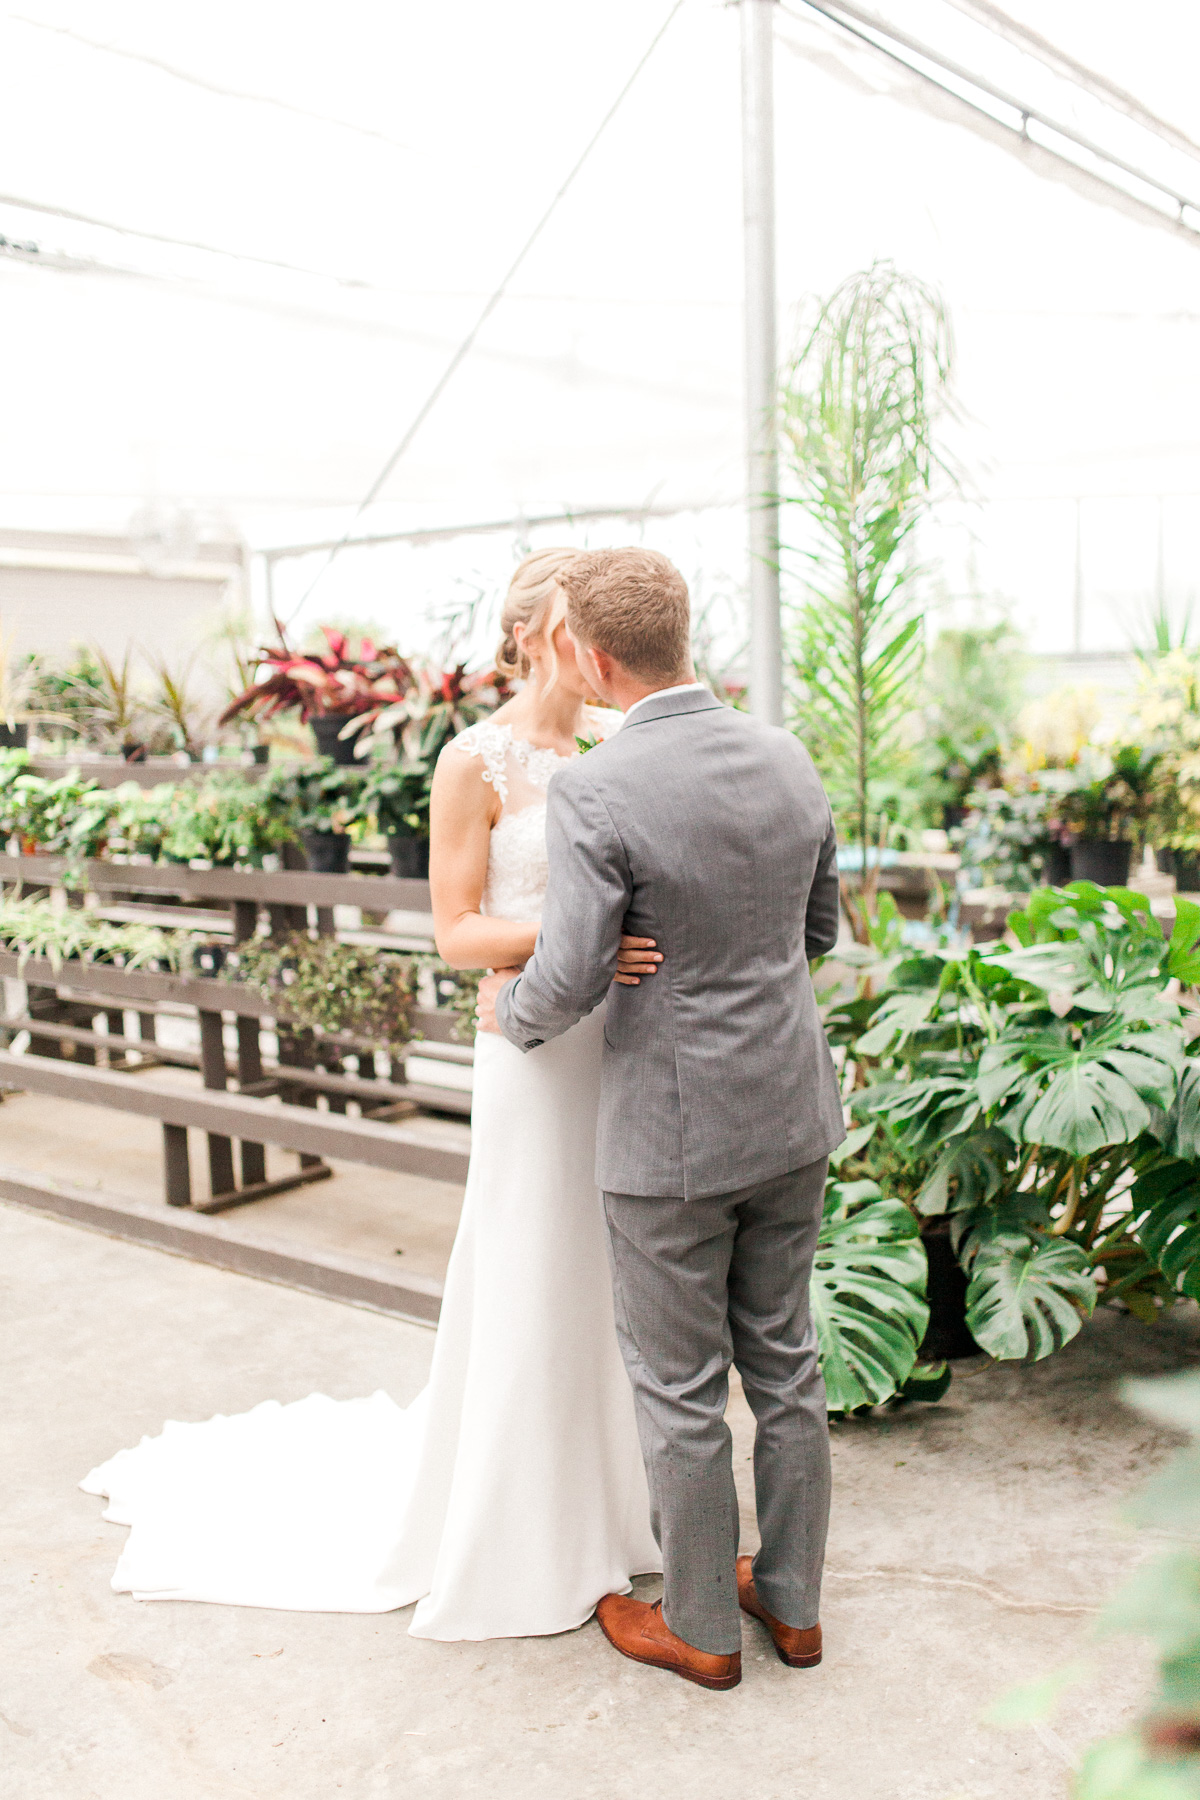 cielos-garden-wedding-winnipeg-wedding-photographer-keila-marie-photography